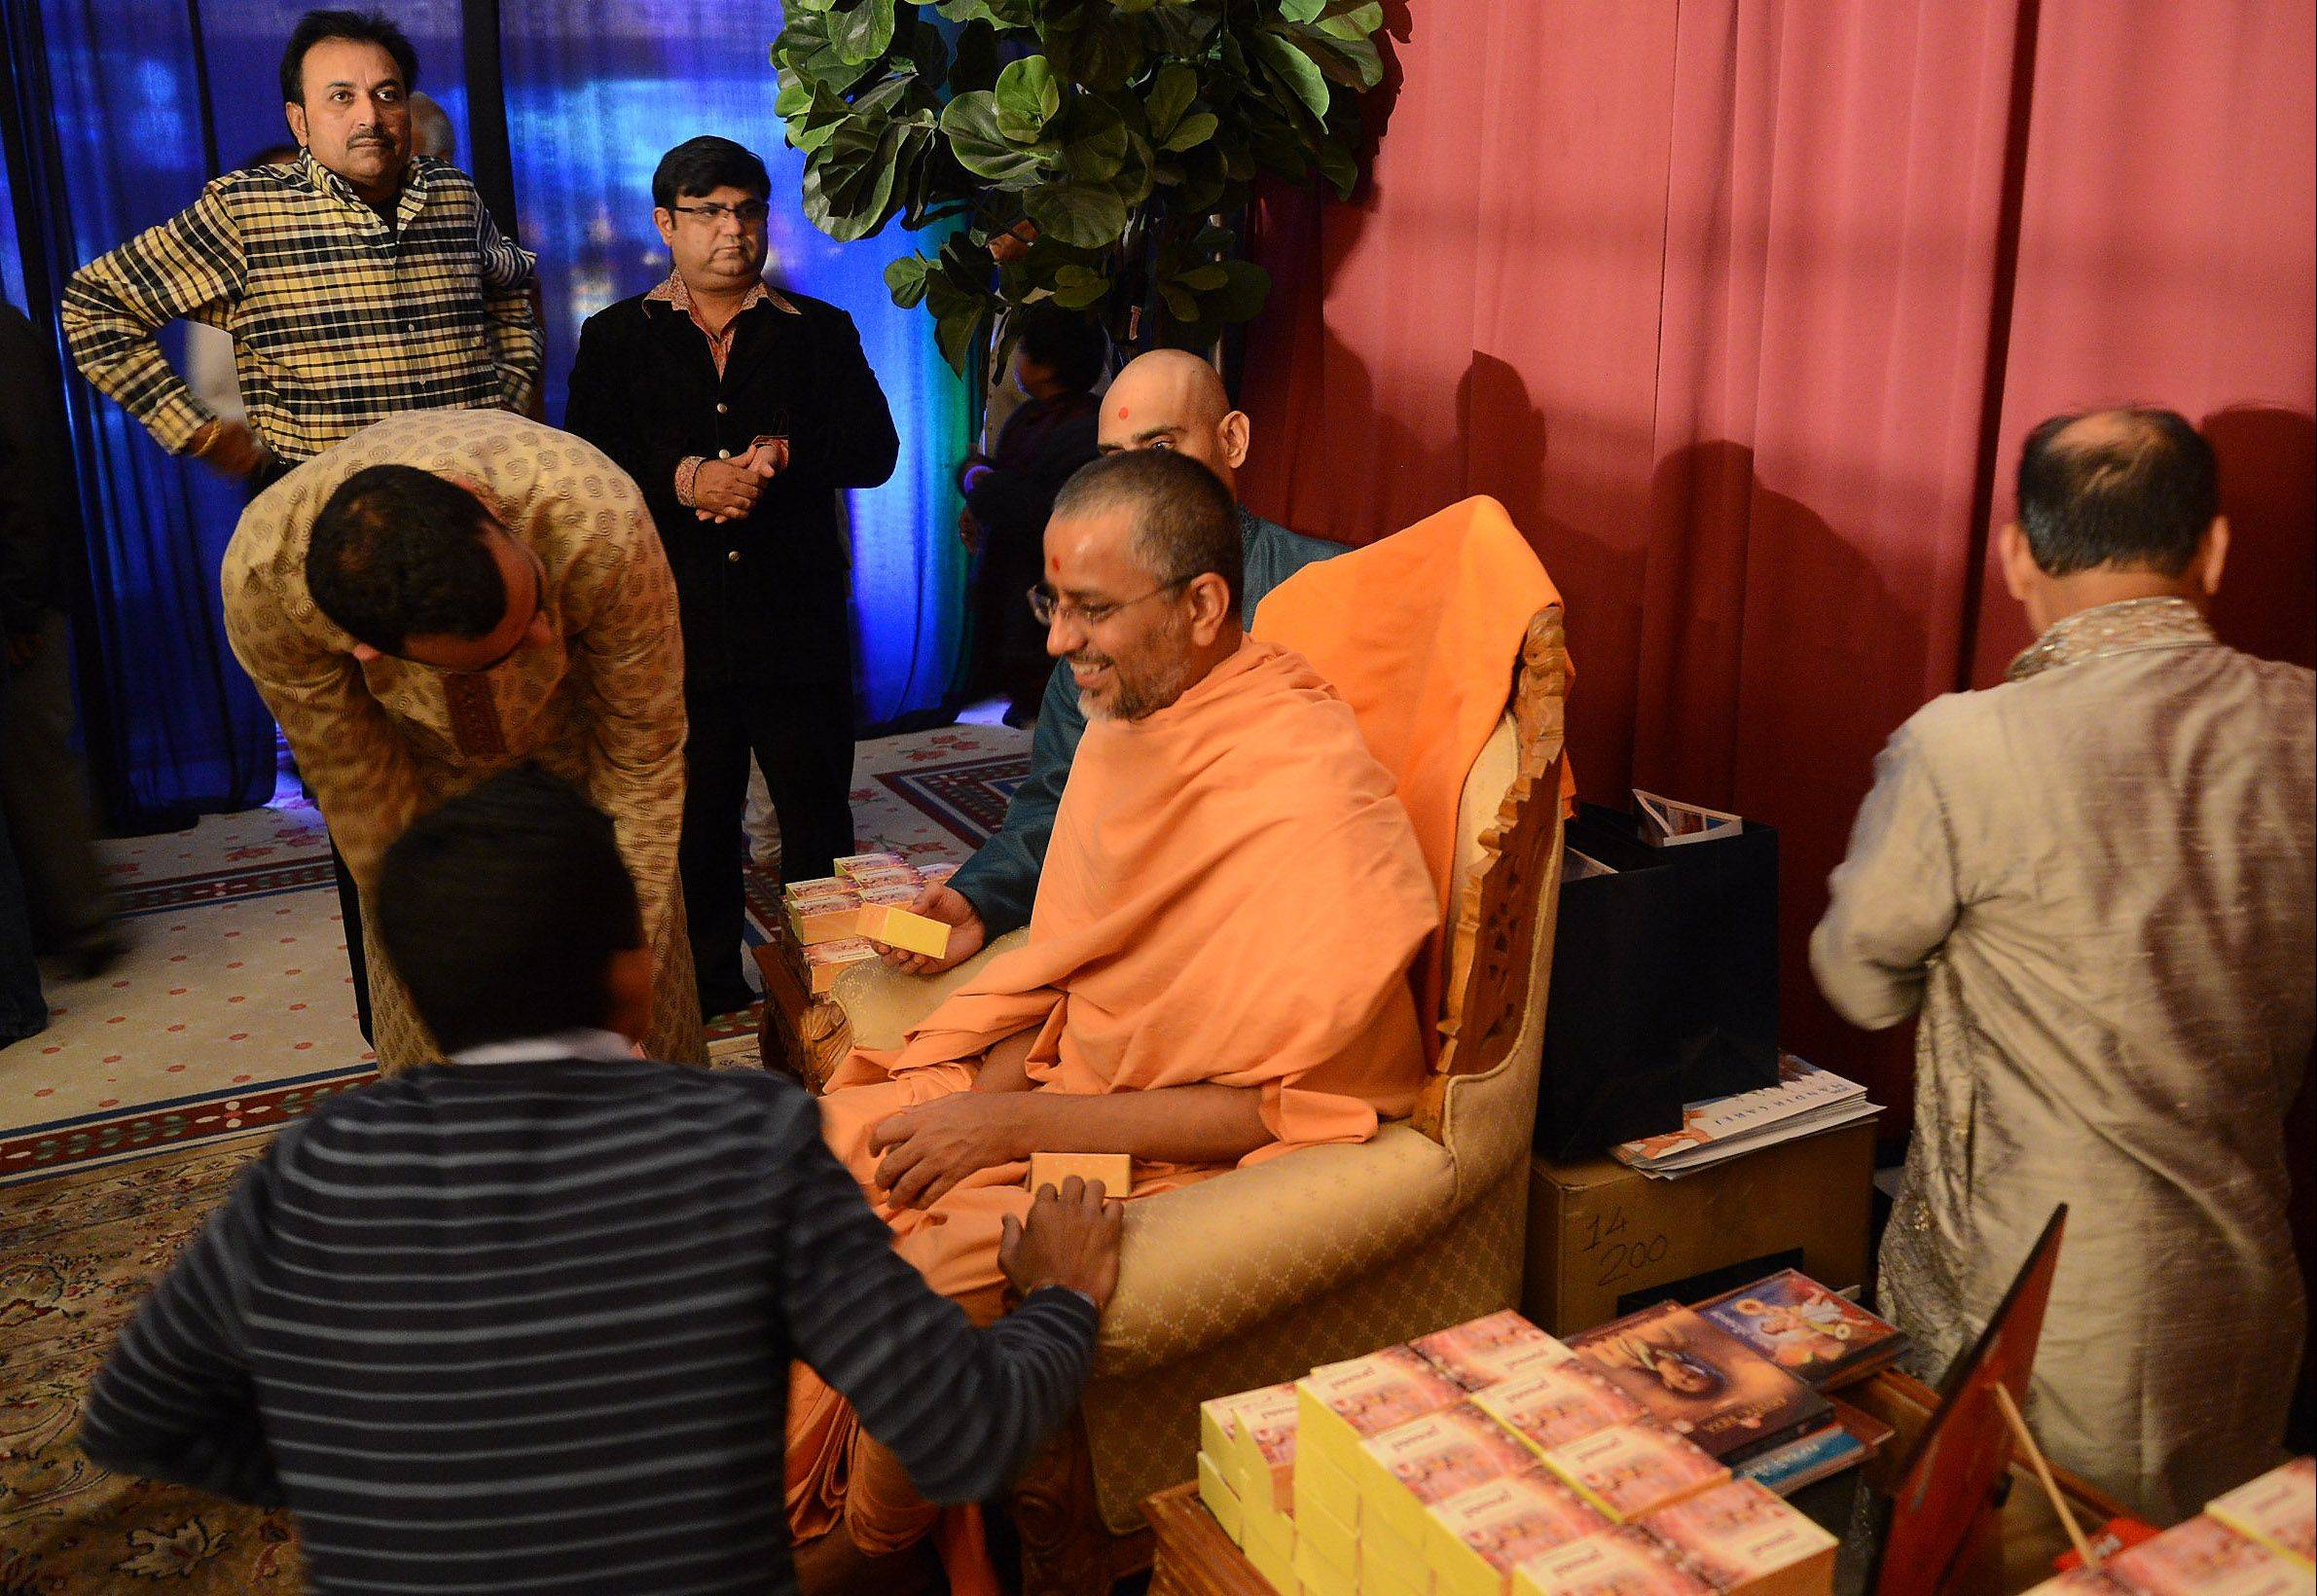 Head priest Sadhu Vivek Murti Das greets guests during the Diwali celebration at BAPS Hindu Mandir in Bartlett.